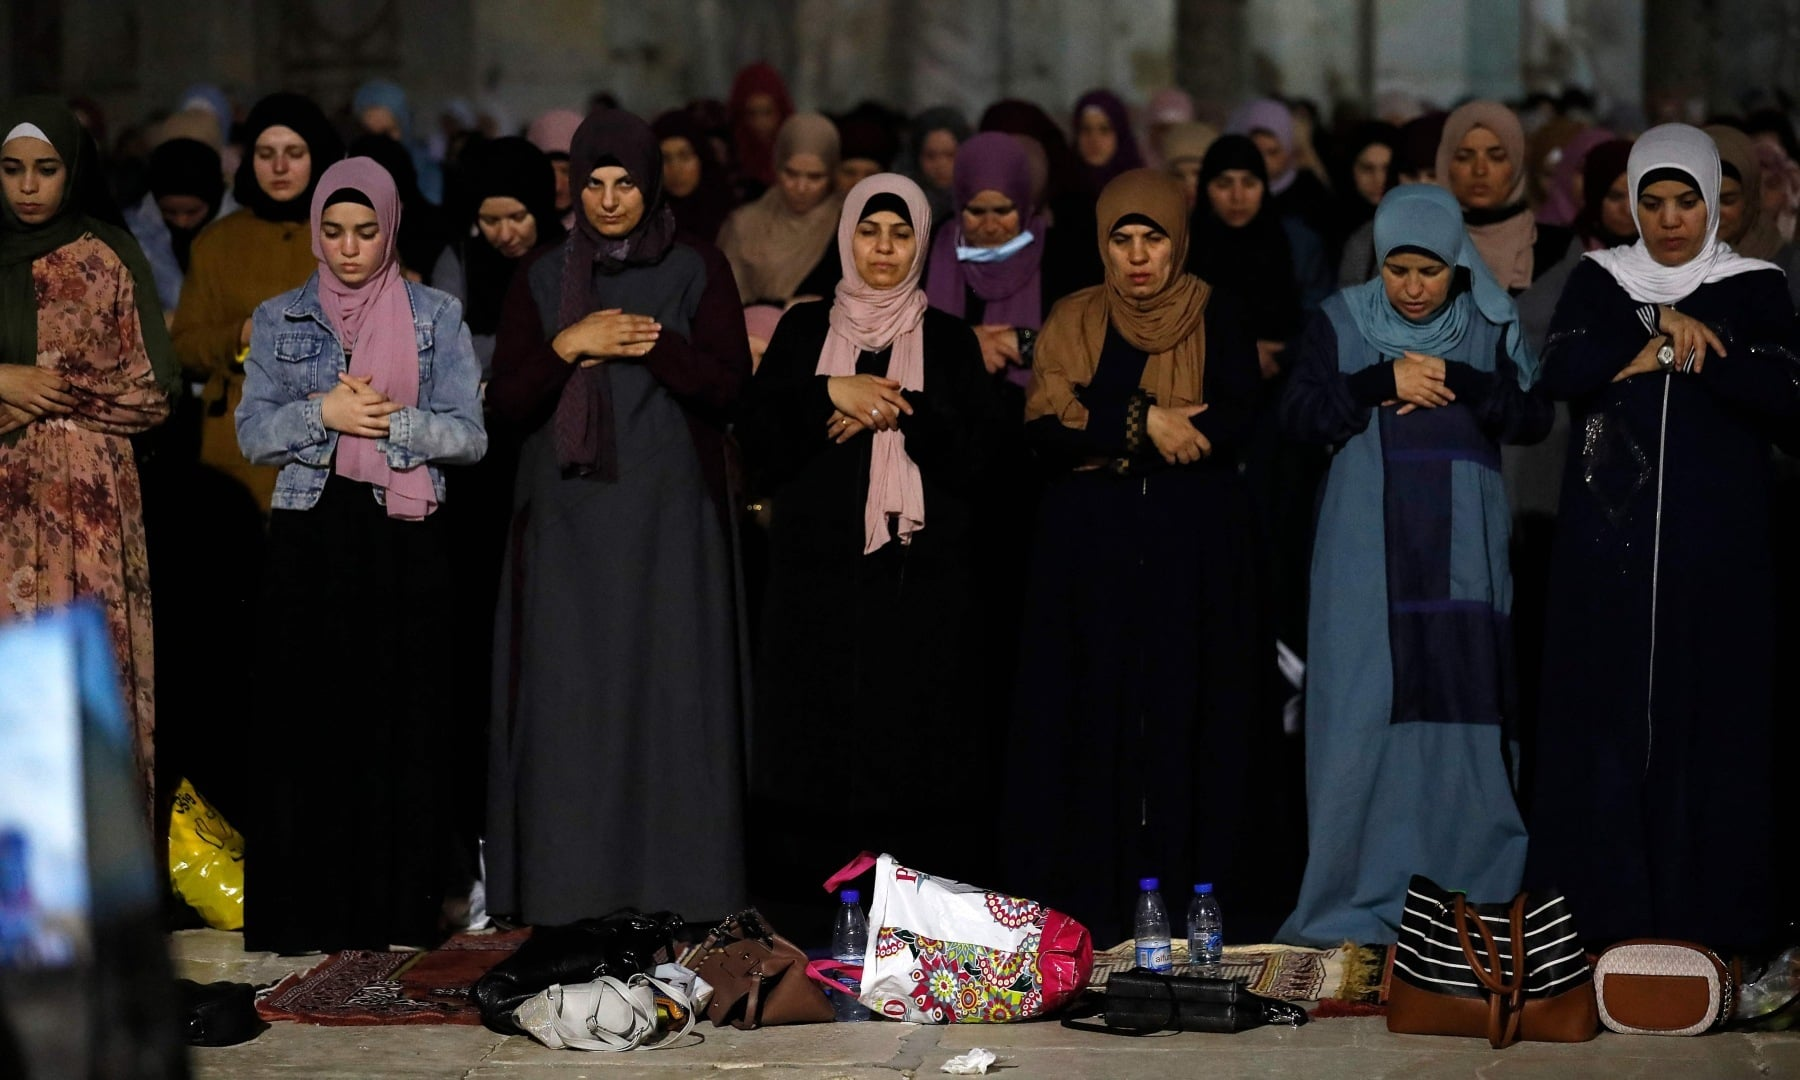 Palestinian devotees pray on Laylat al-Qadr outside the Dome of the Rock in Jerusalem's Al-Aqsa Mosque compound on May 8. — AFP